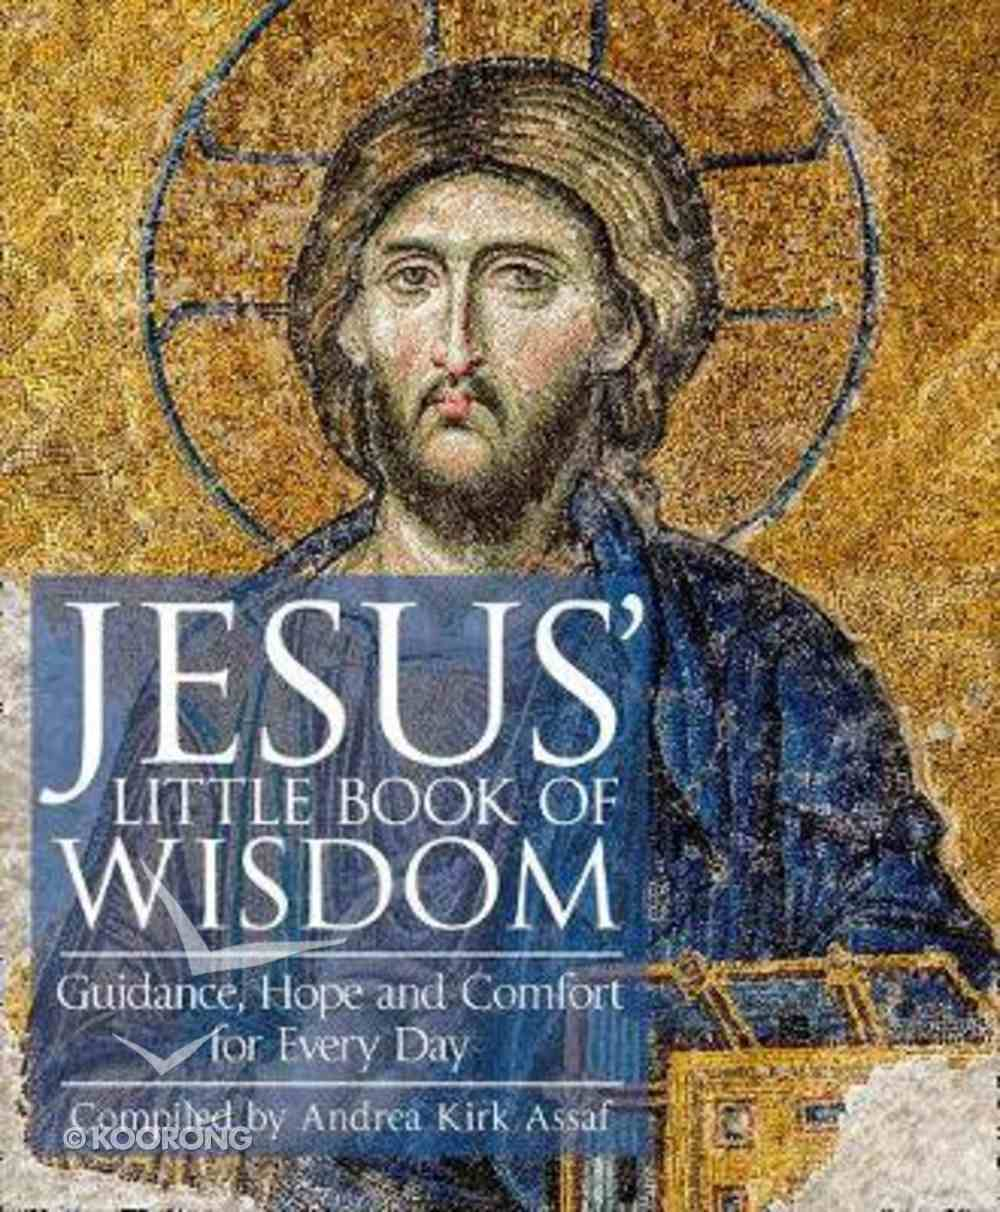 Jesus' Little Book of Wisdom: Guidance, Hope and Comfort For Every Day Paperback